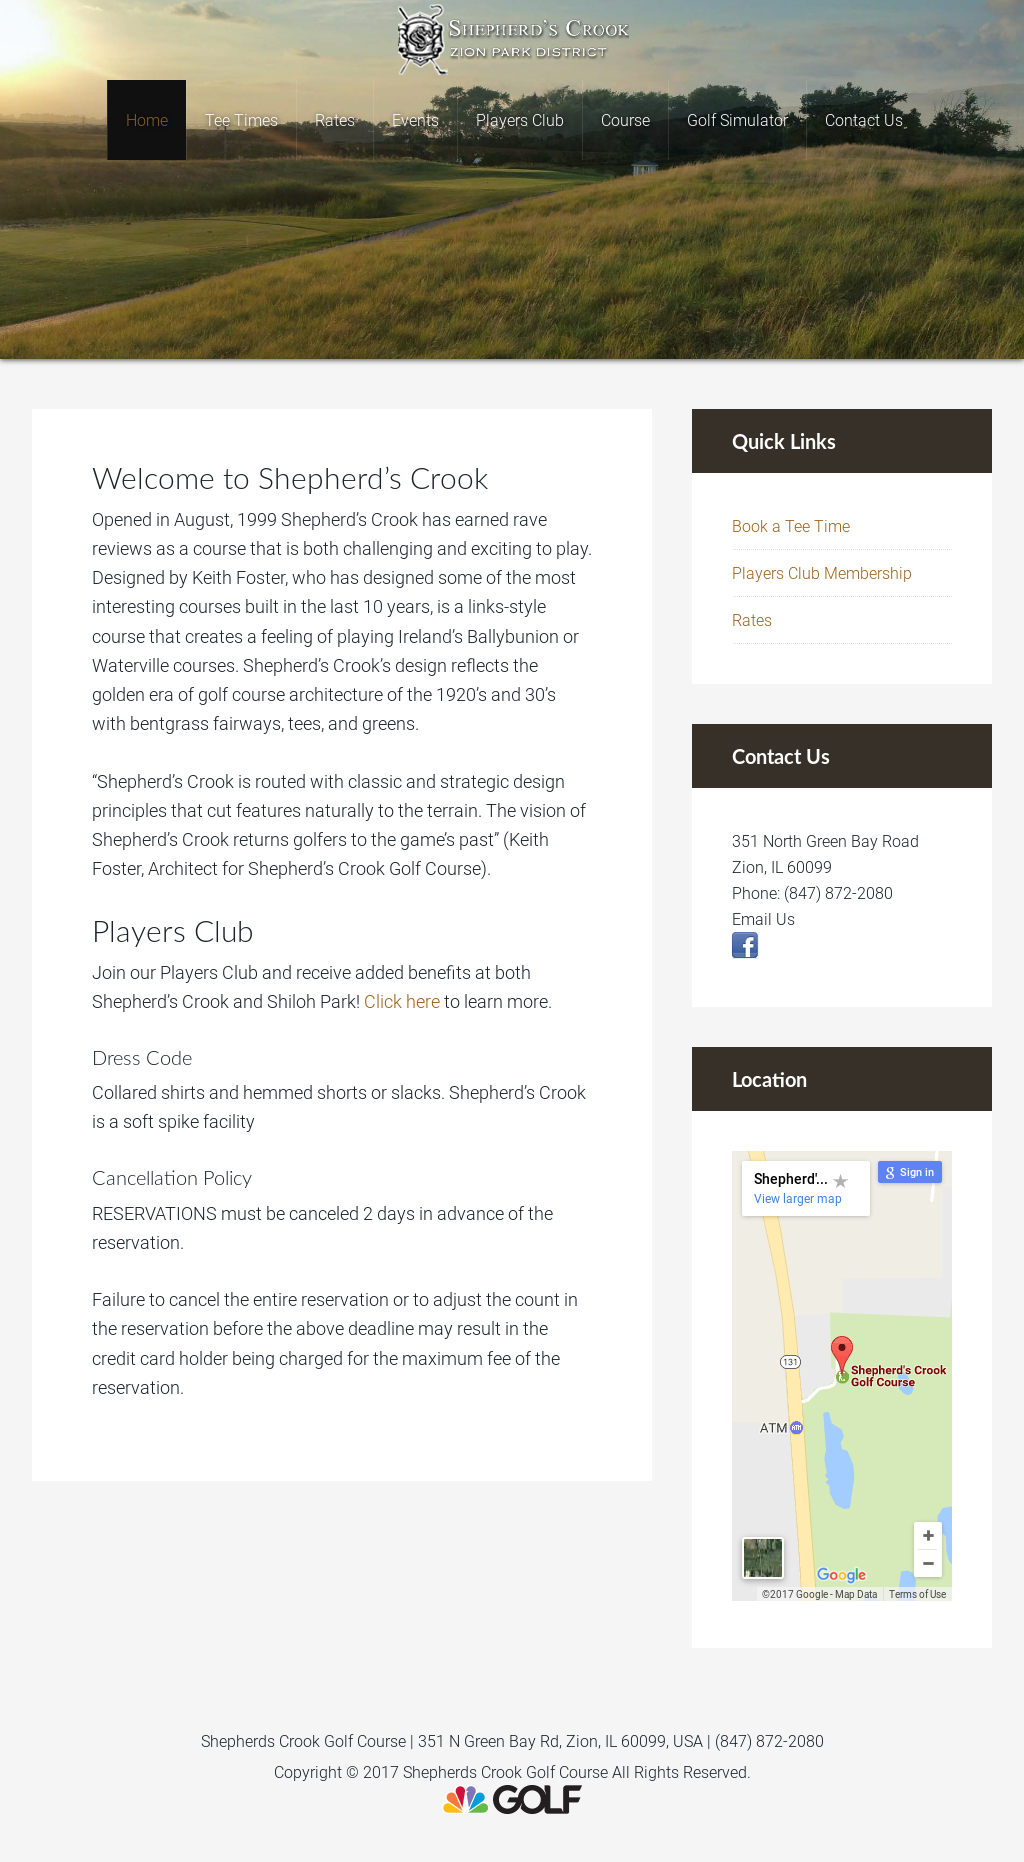 shepherds crook golf course Competitors, Revenue and